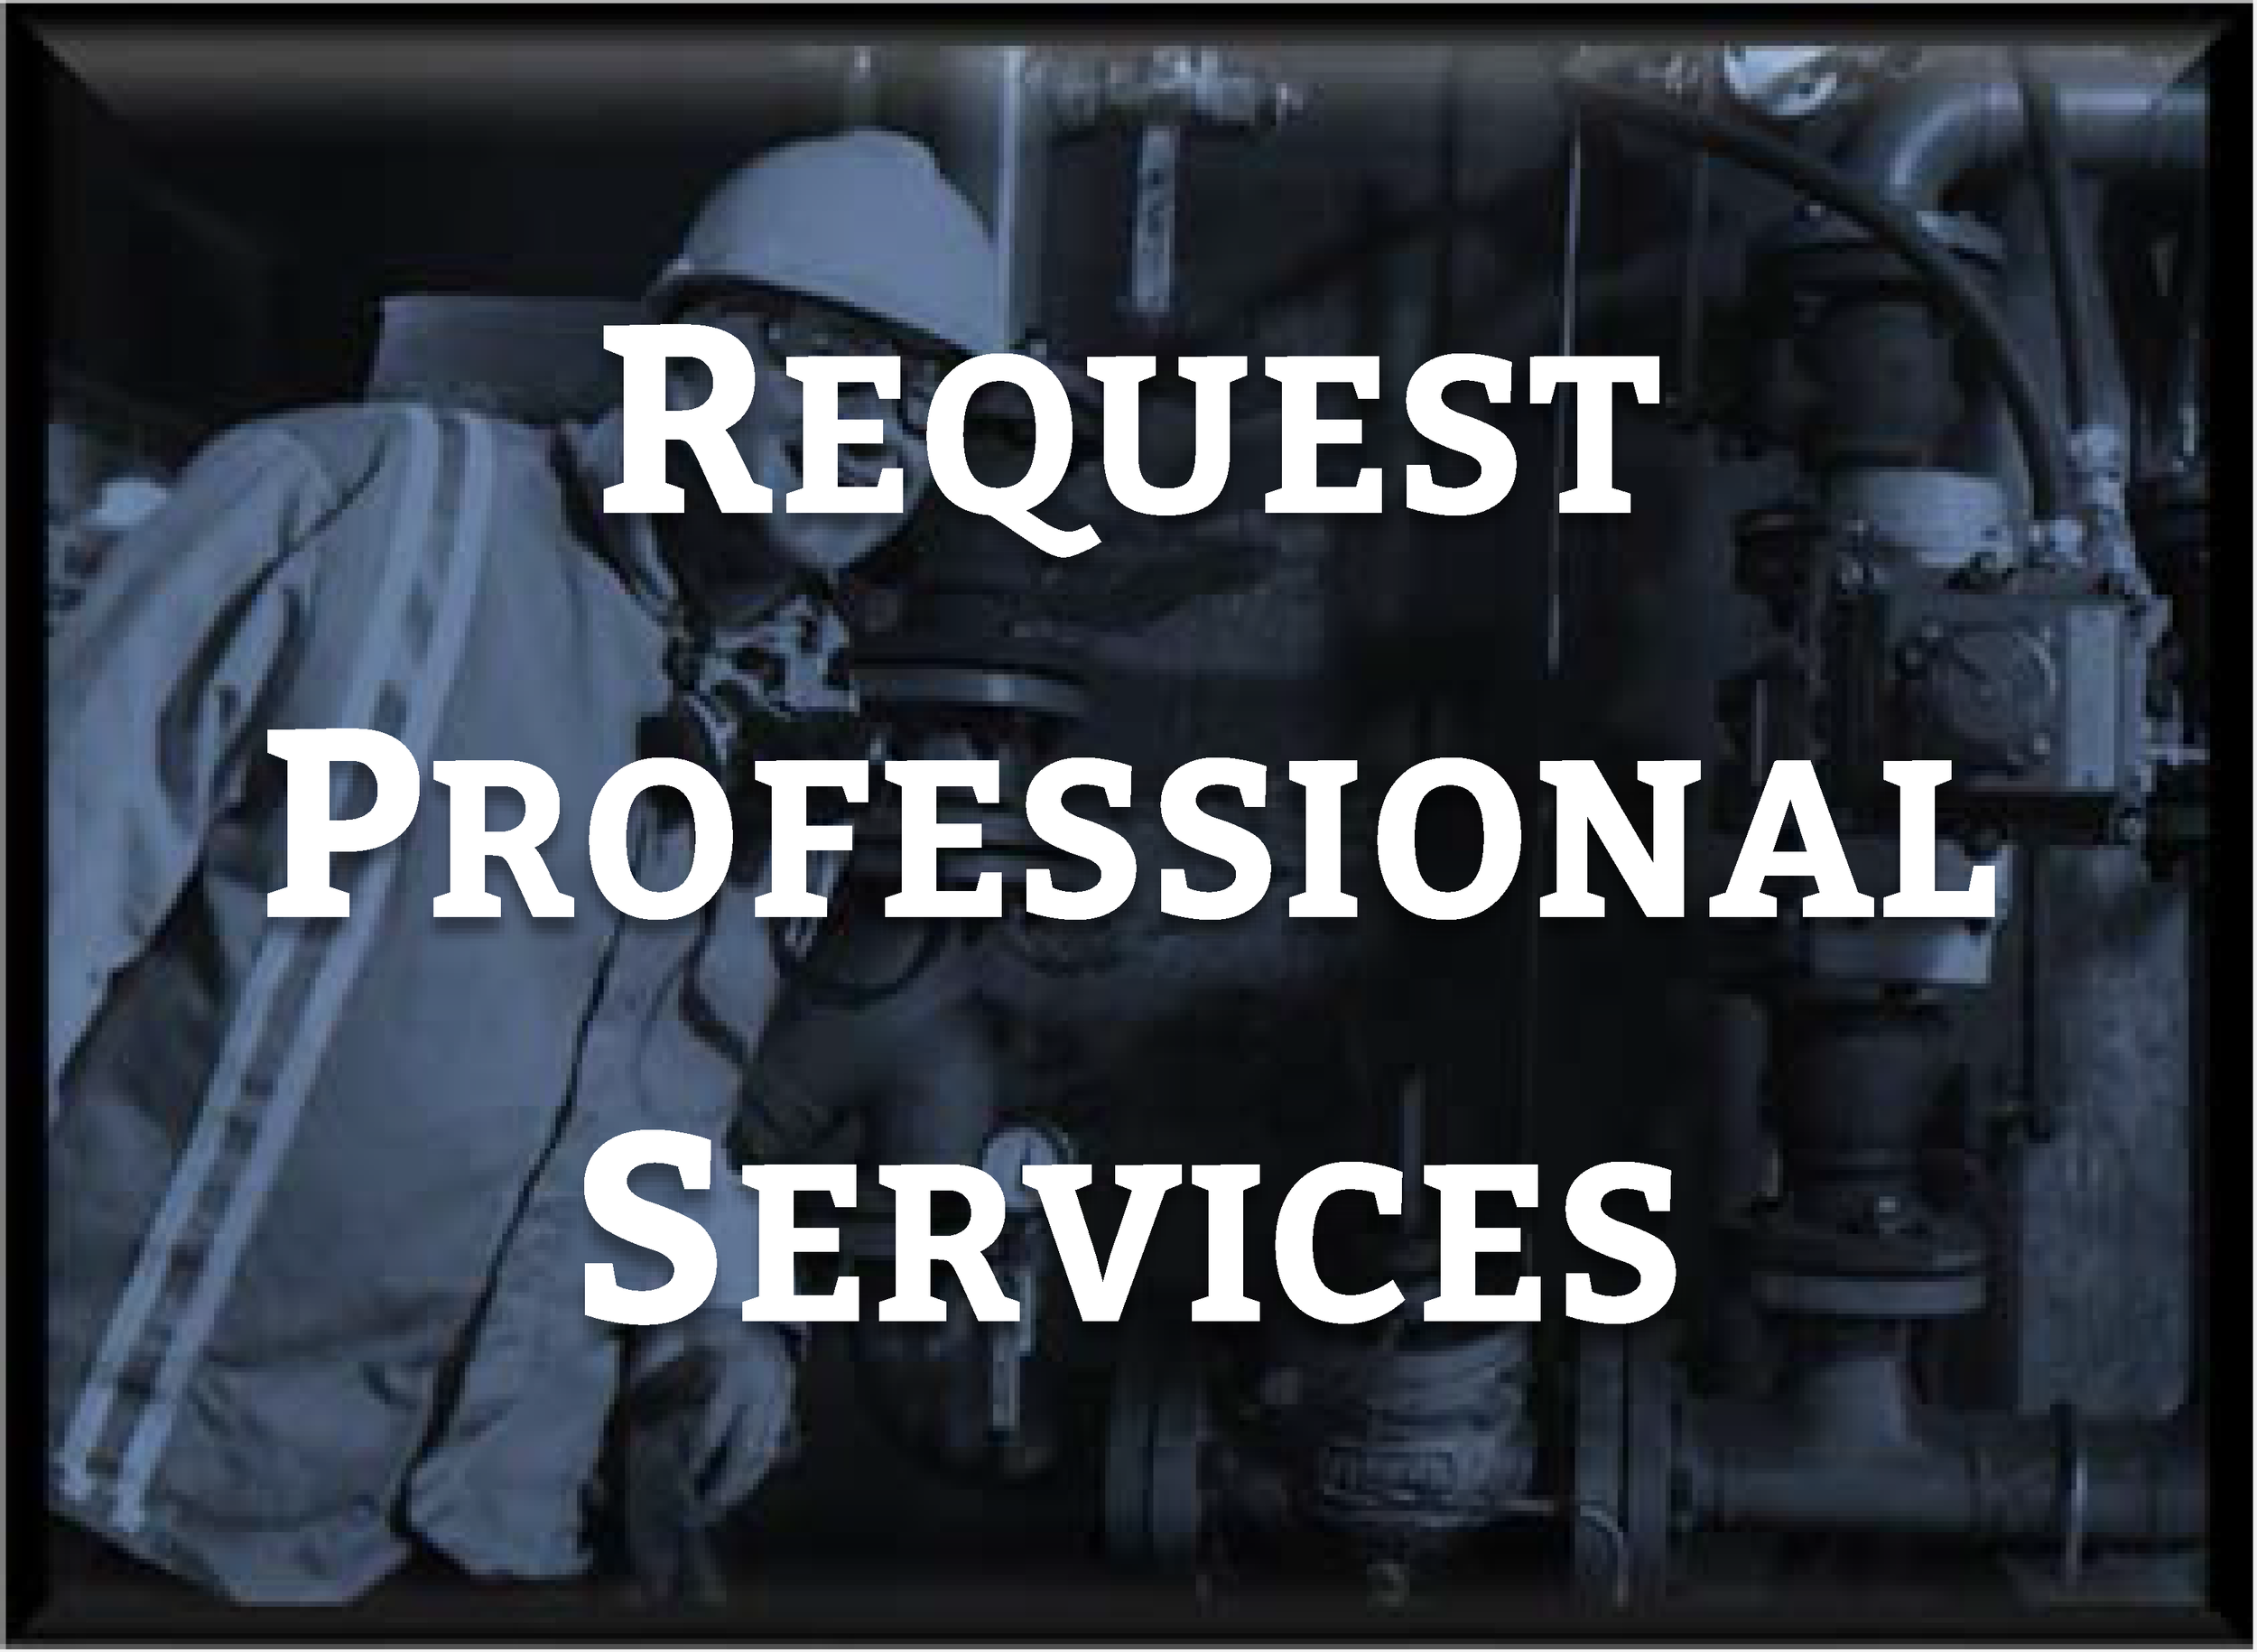 Request Prof Services2.png